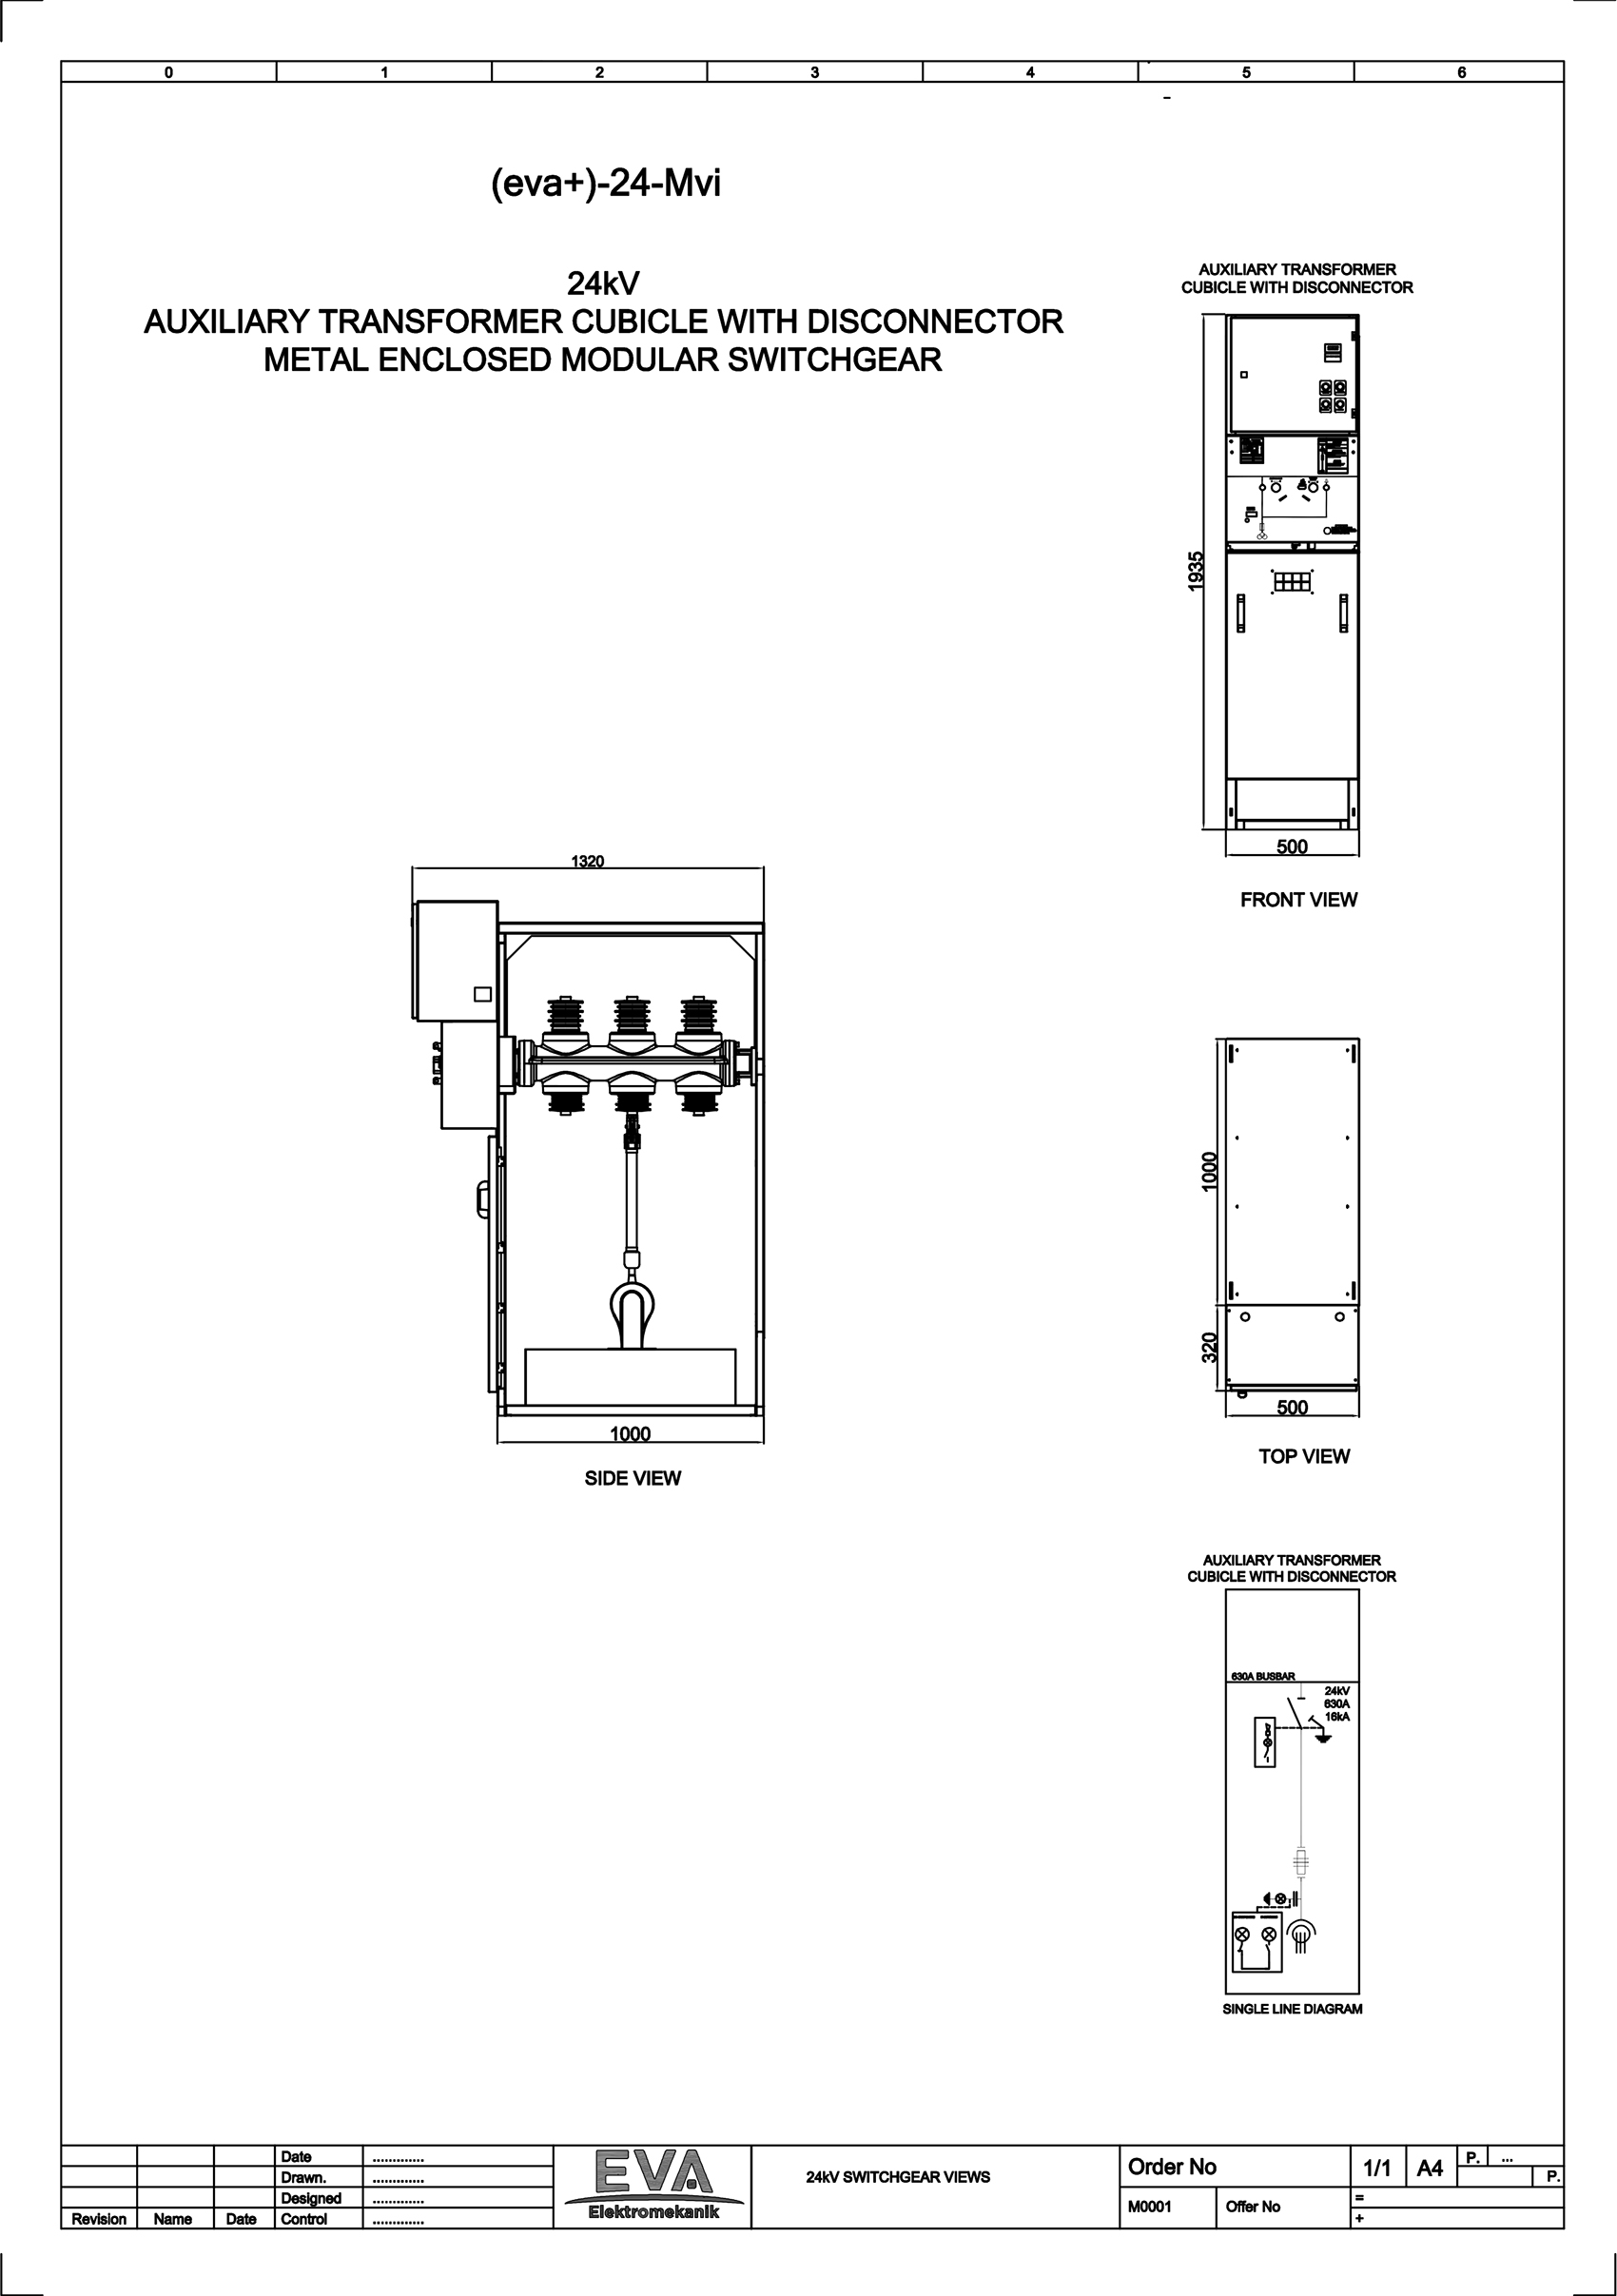 Auxiliary Transformer Cubicle with Disconnector